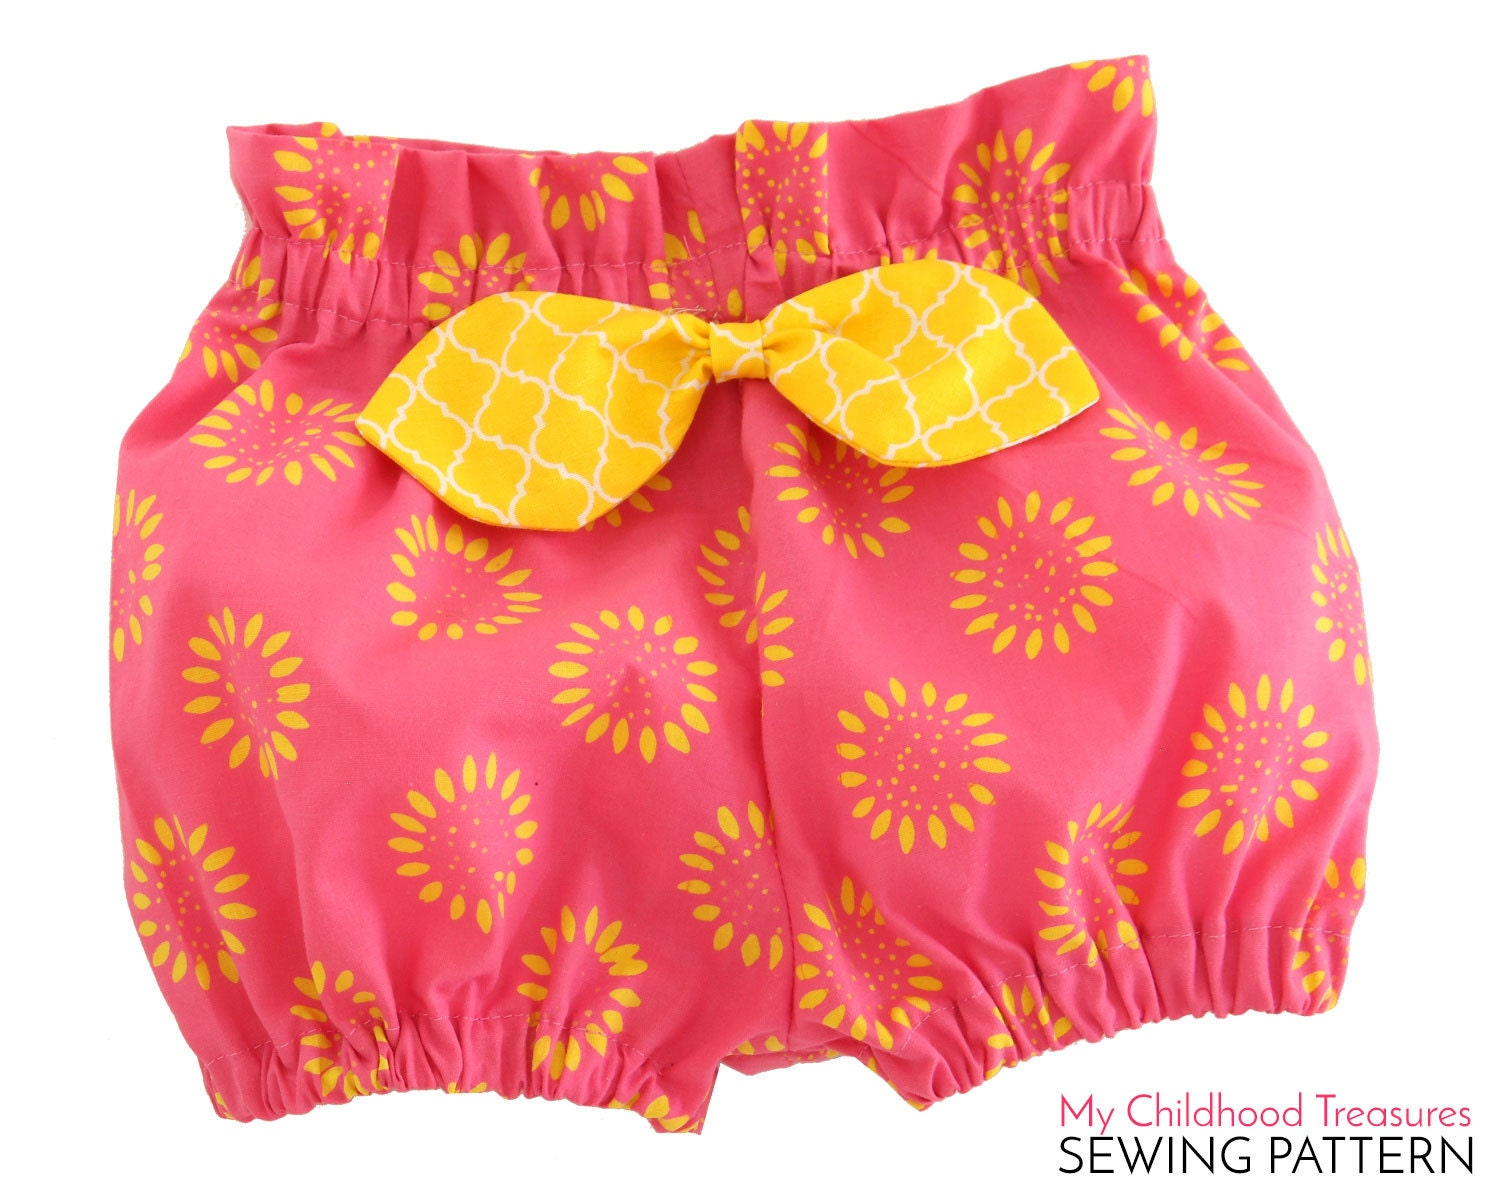 The Baby Bloomers make great gifts for showers, portraits, and first birthdays. Our infant toddler ruffled Diaper Covers are super soft and have tons of ruffles. Each one is embellished with a tiny little bow and rhinestone. Our Bloomers for little girls are made with super soft chiffons and cotton.